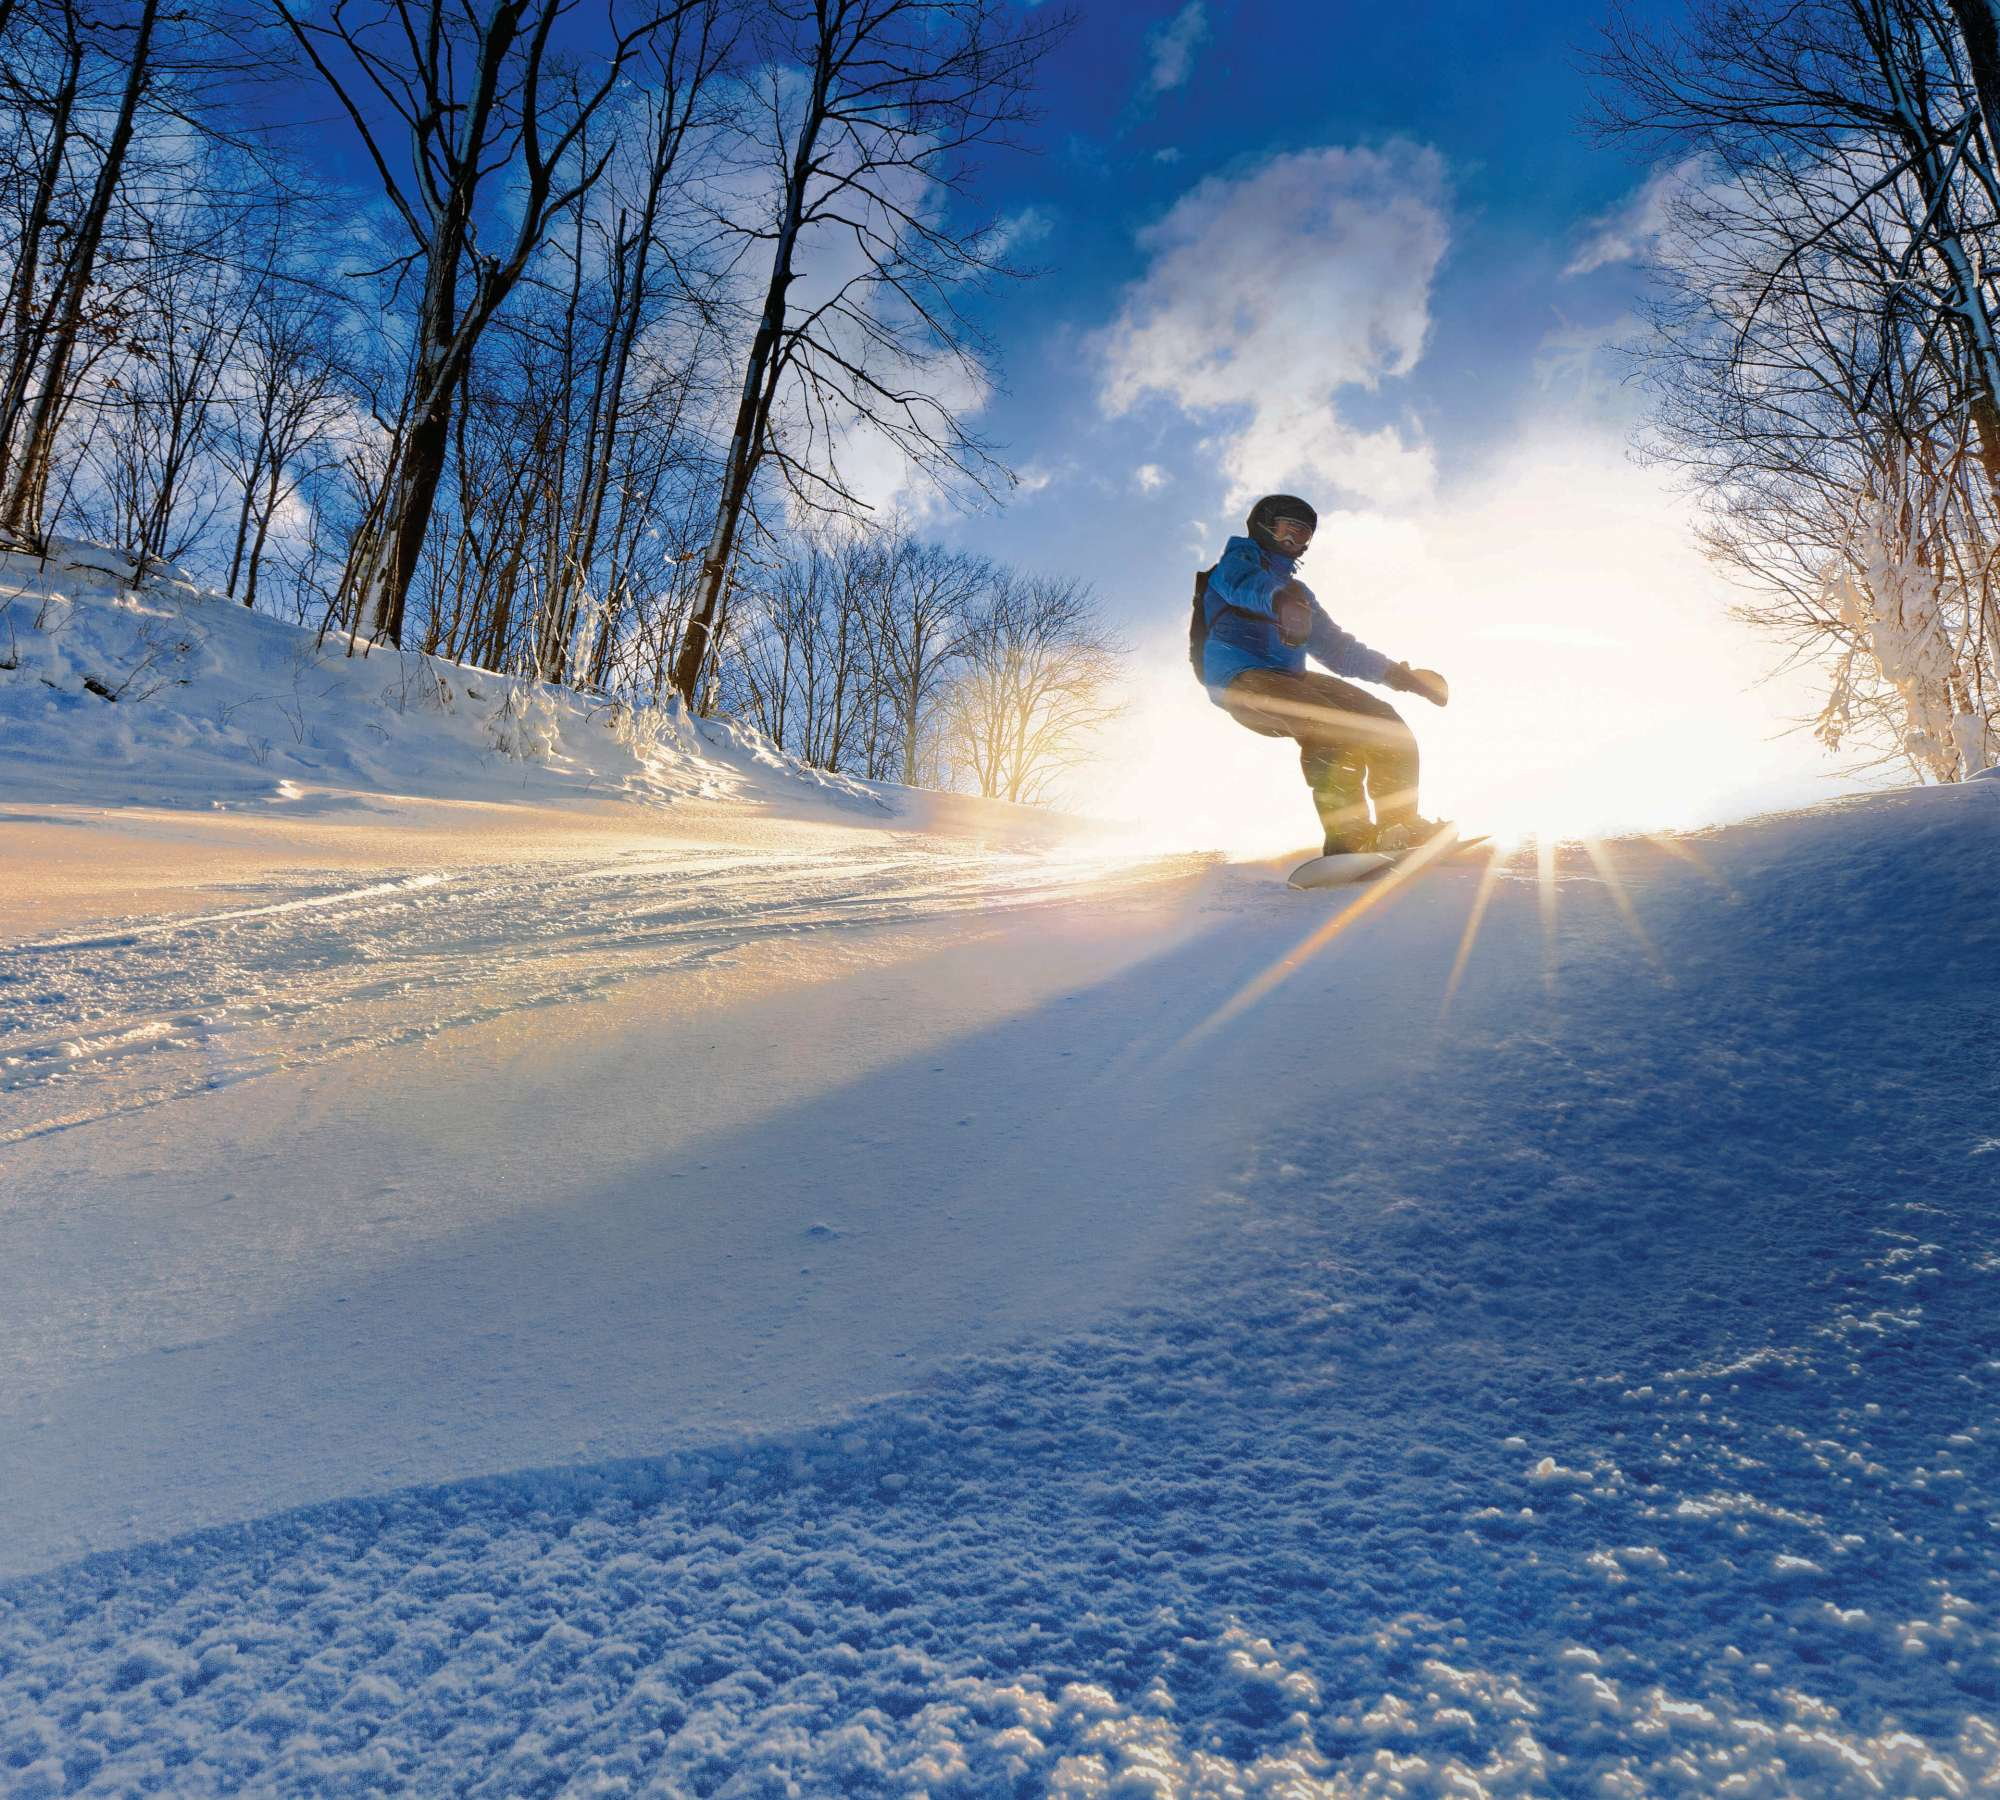 Snowboarder on fresh-groomed snow